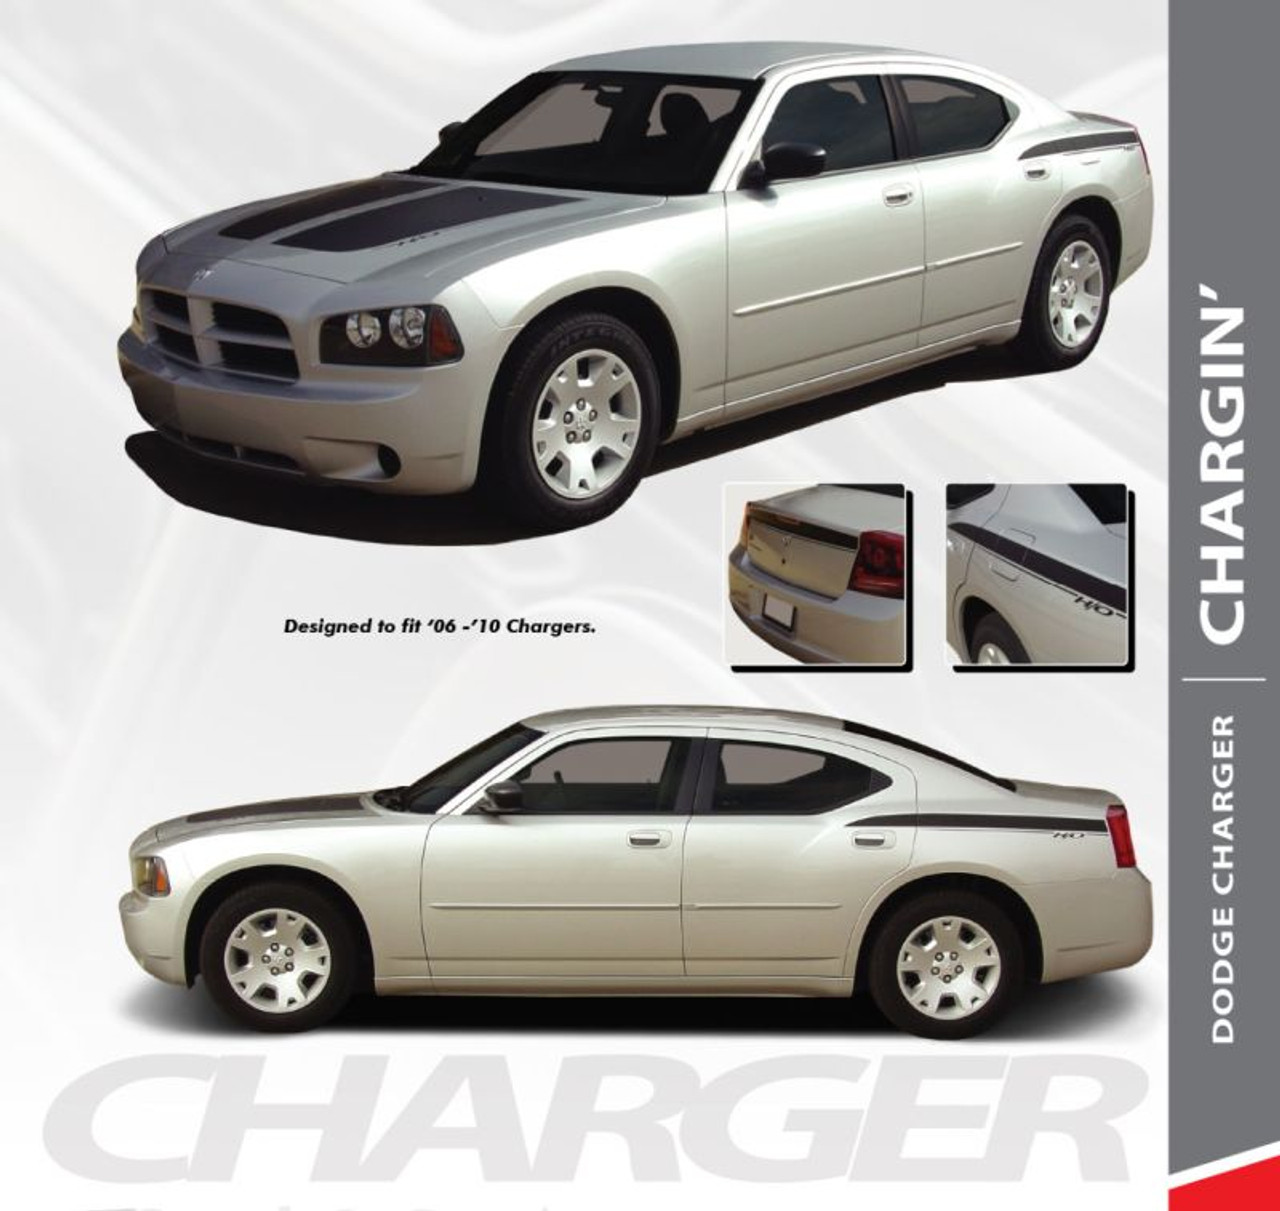 DODGE CHARGER 2006-2010 QUARTER PANEL STRIPE KIT CHOICE OF COLOR DECAL